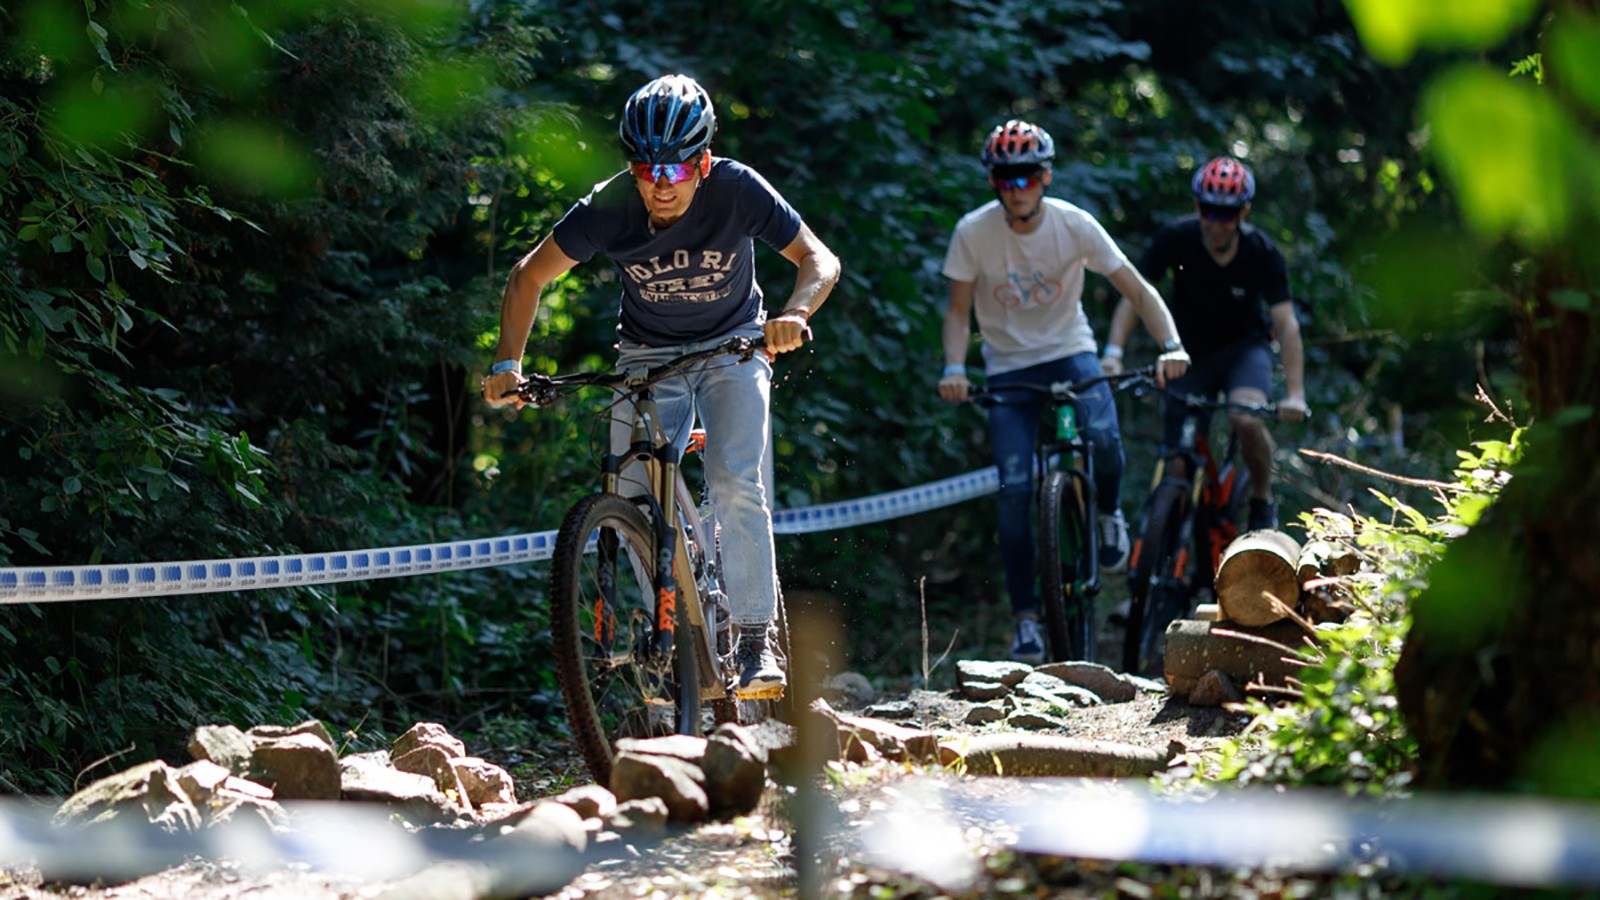 Ride a mountain bike on the singletrack loop at the MTB Bunker